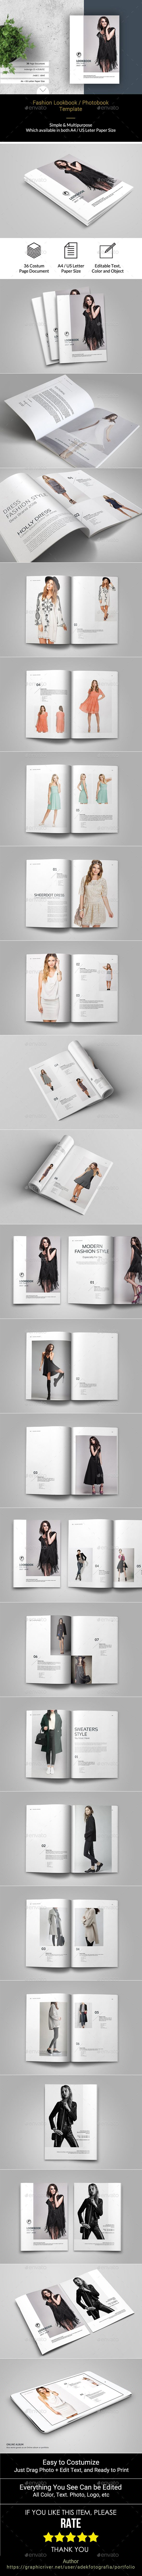 Lookbook / Photobook | Brochures, Brochure template and Template